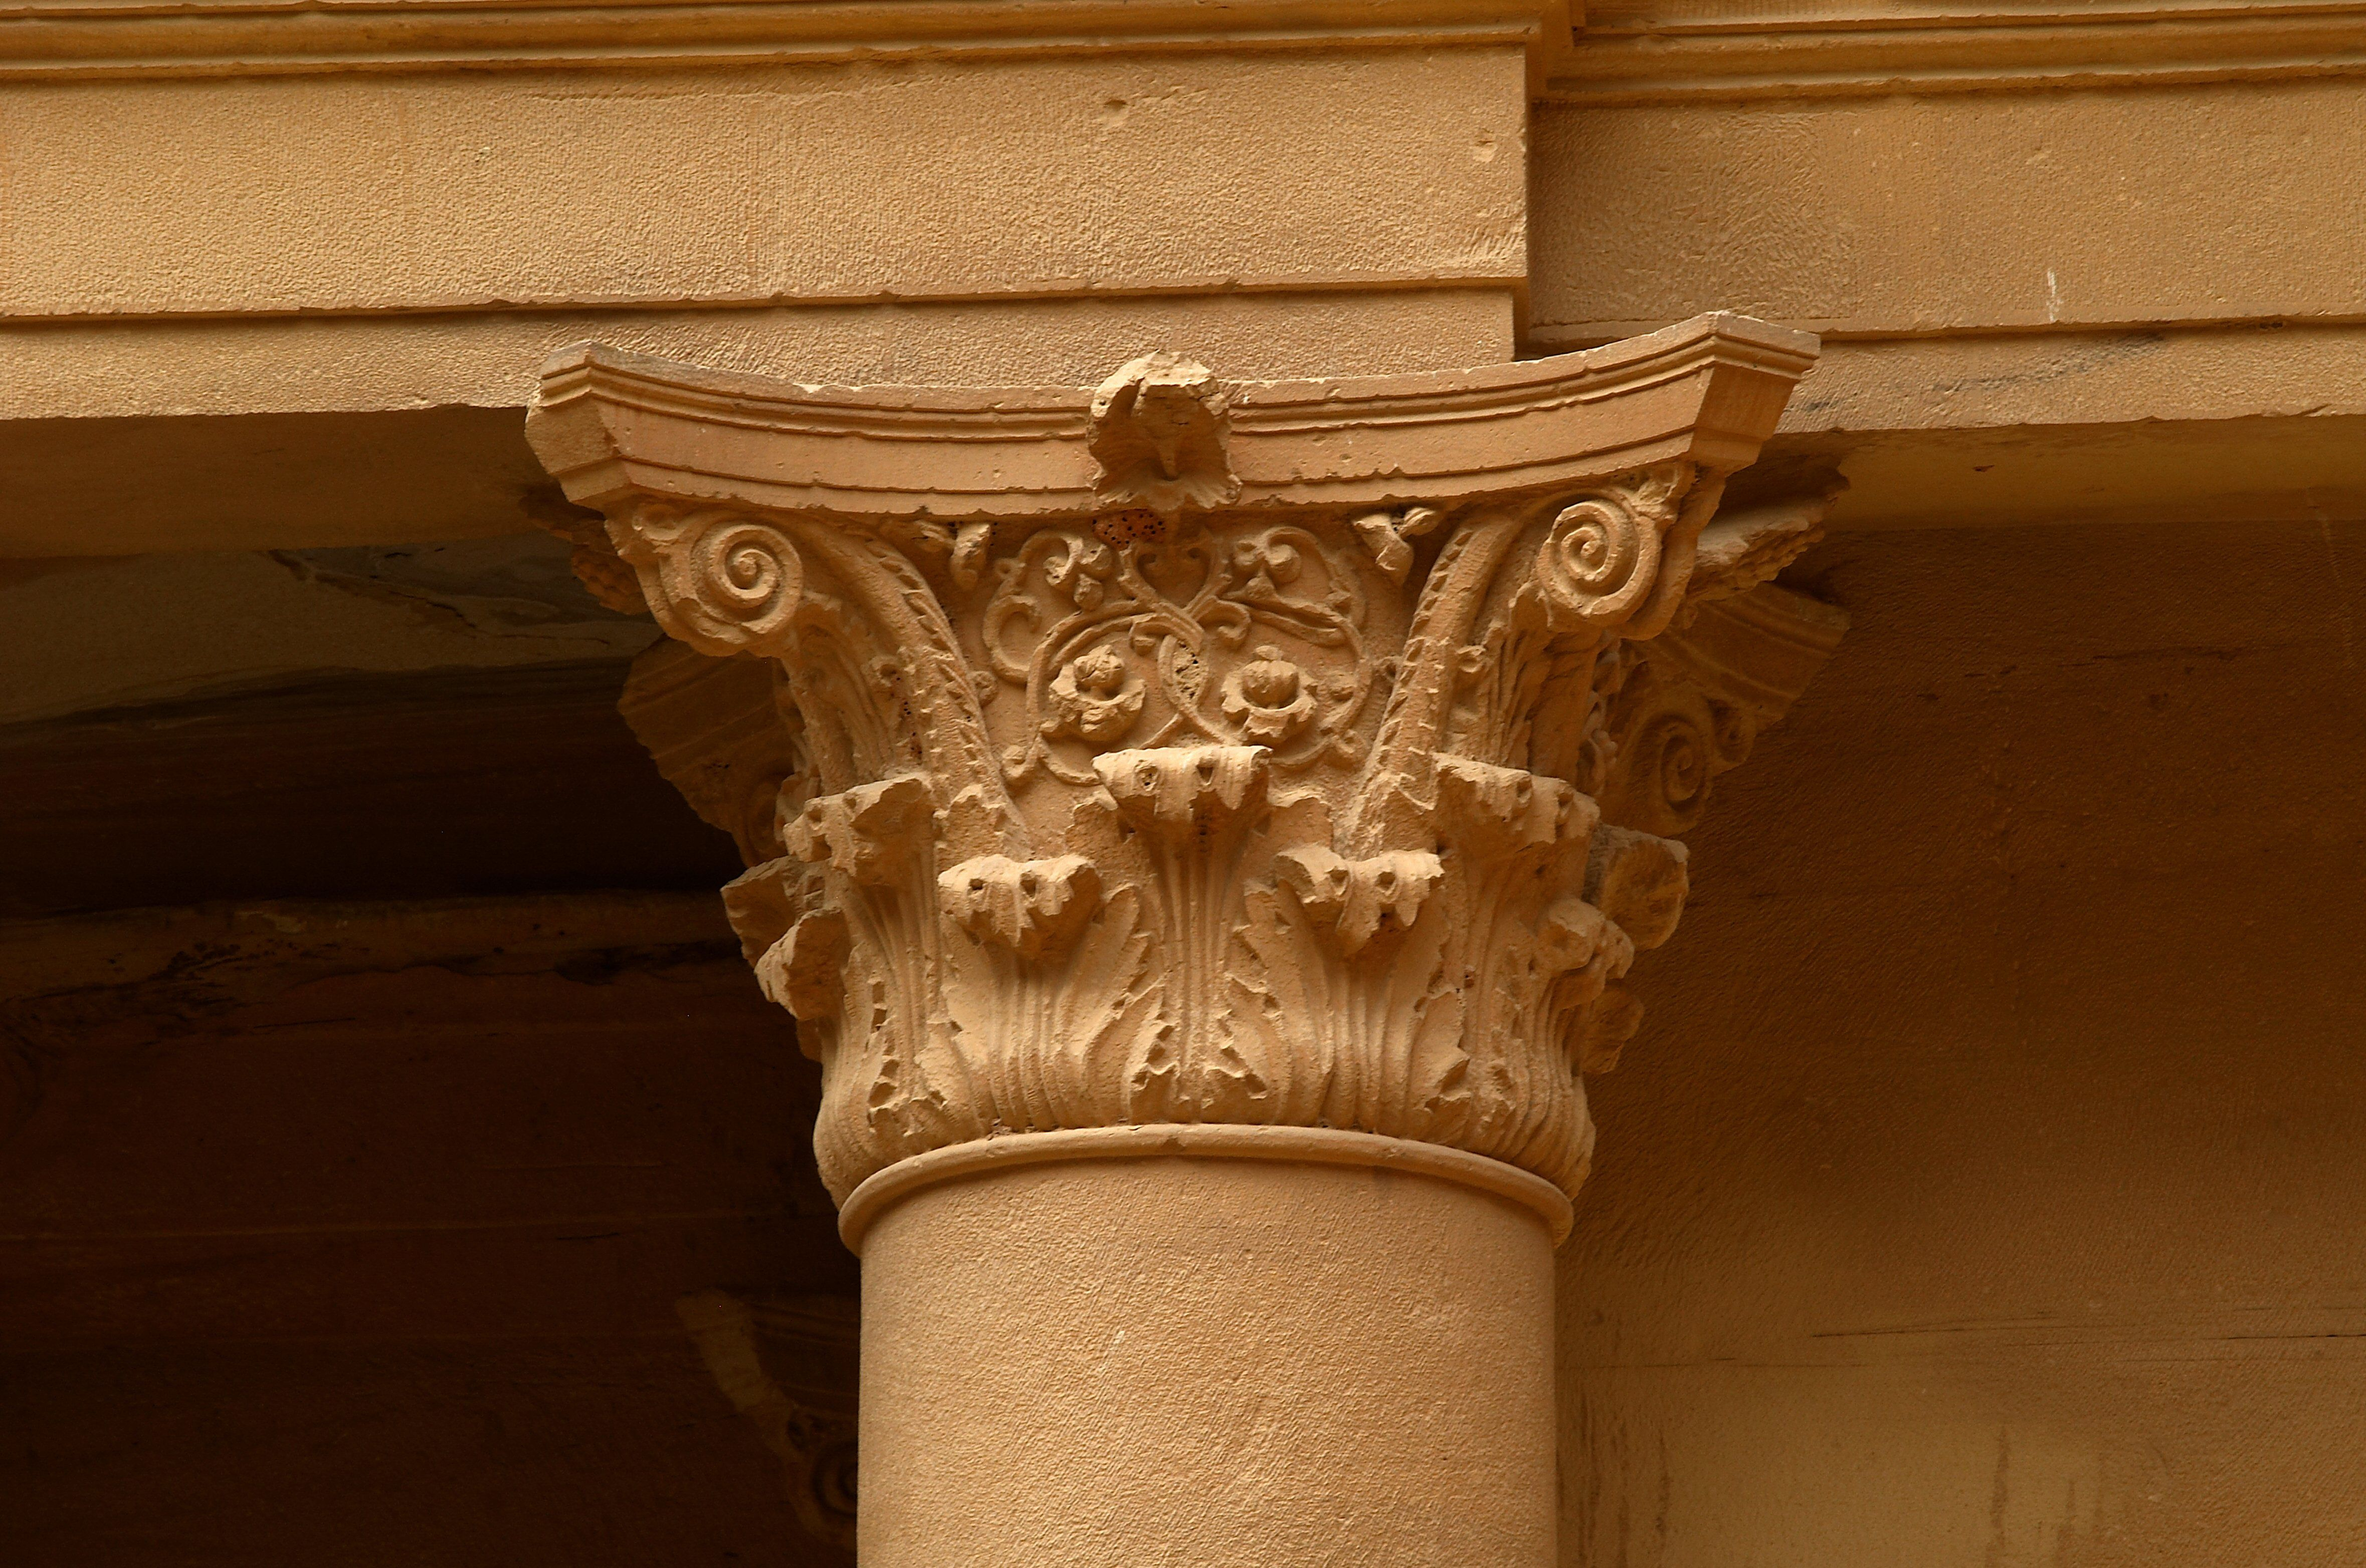 detail of an ornate capital, the top part of a column